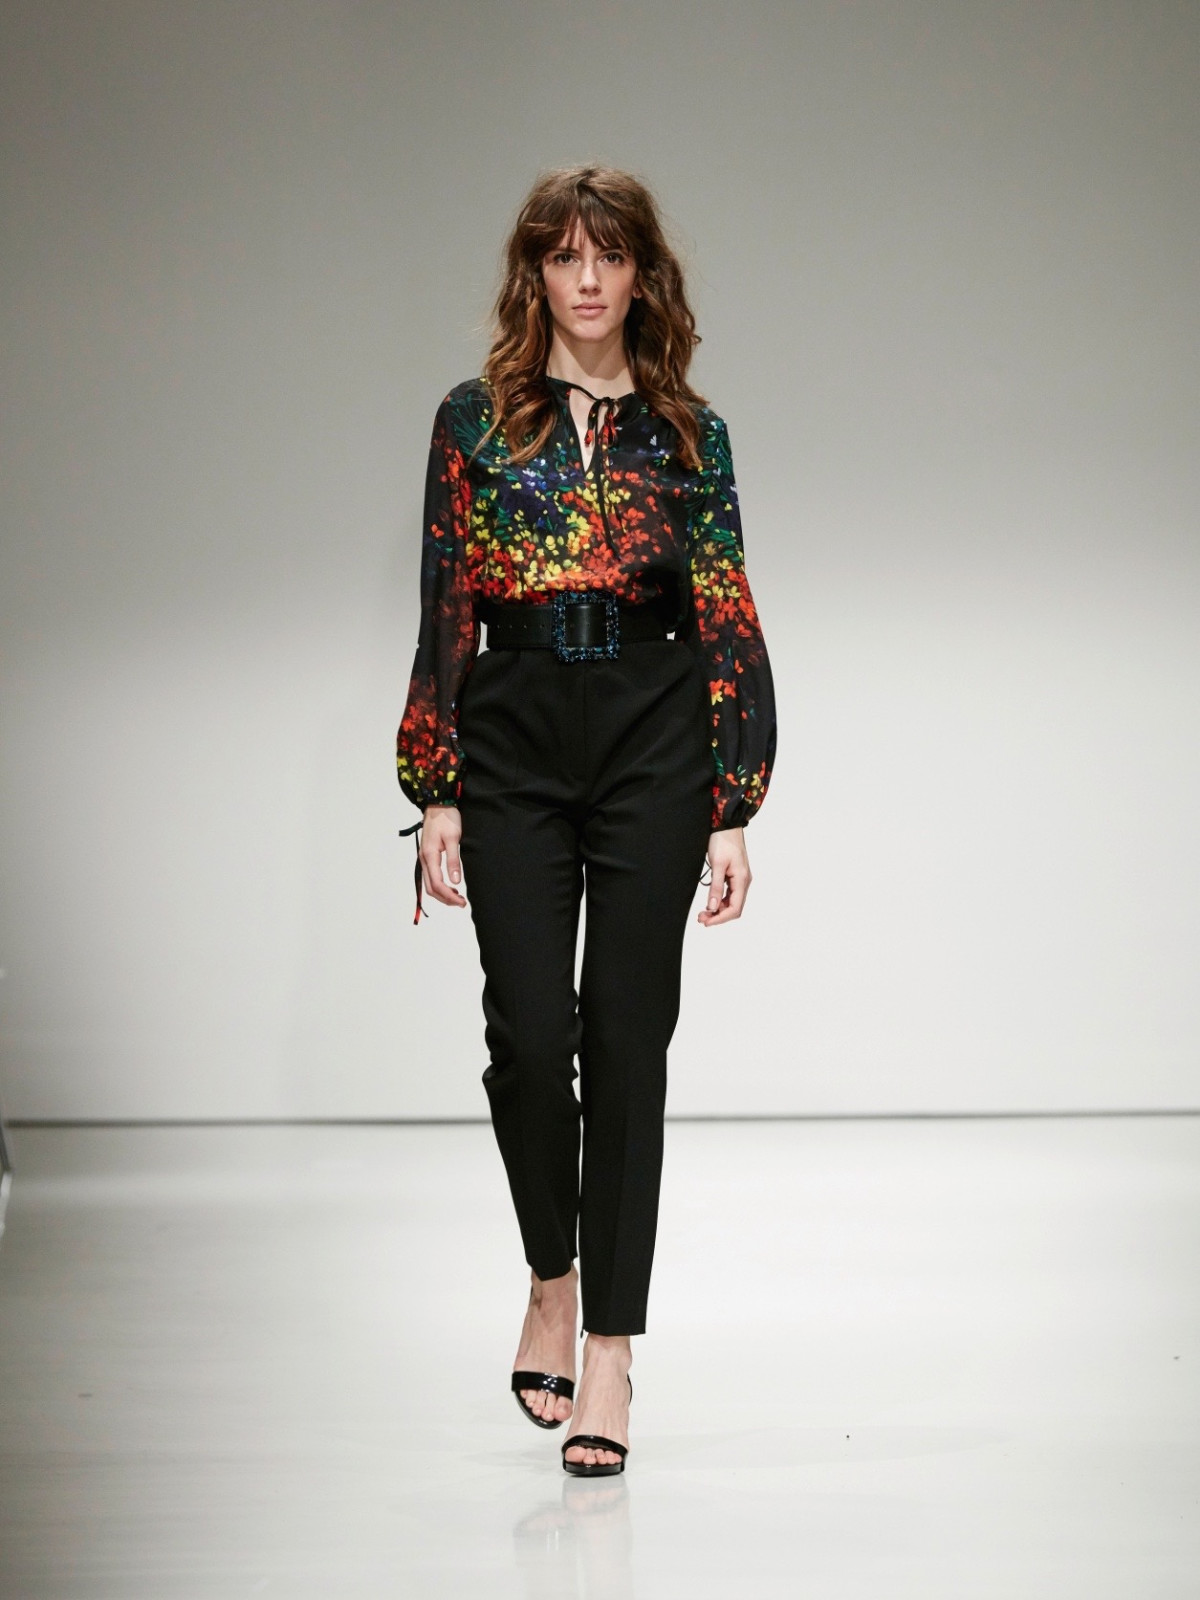 Escada Silk Flower Print Top and High Waist Pant